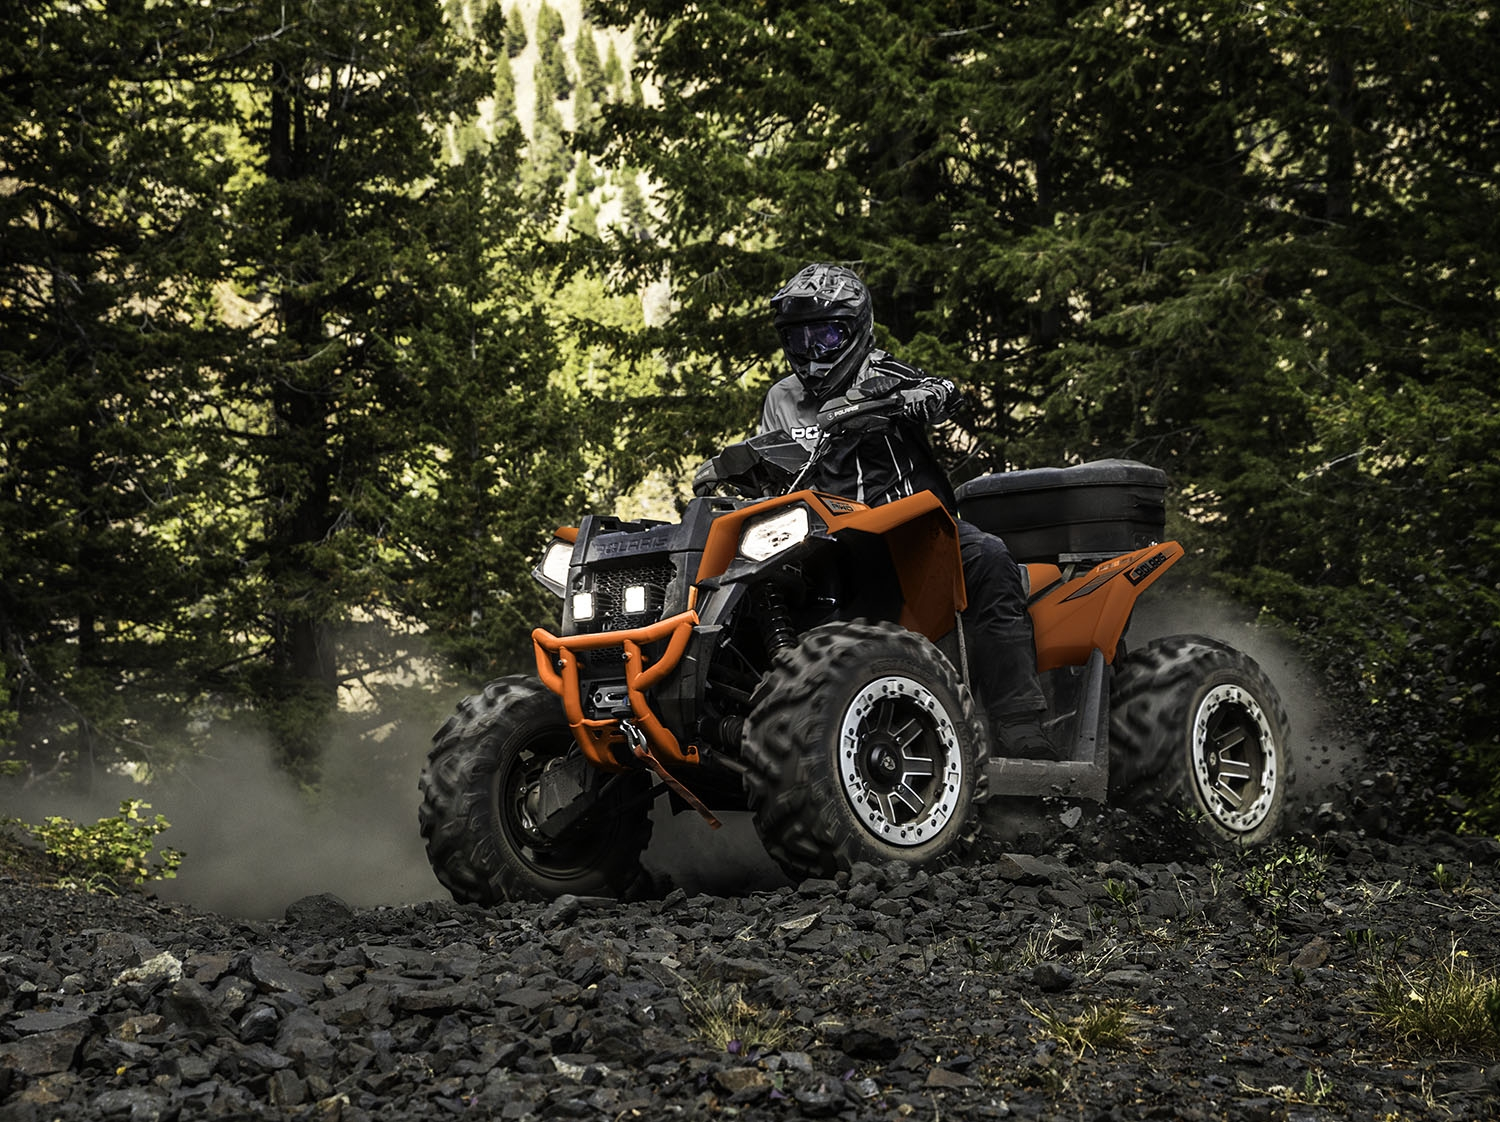 2020-scrambler-850-orange-madness_6